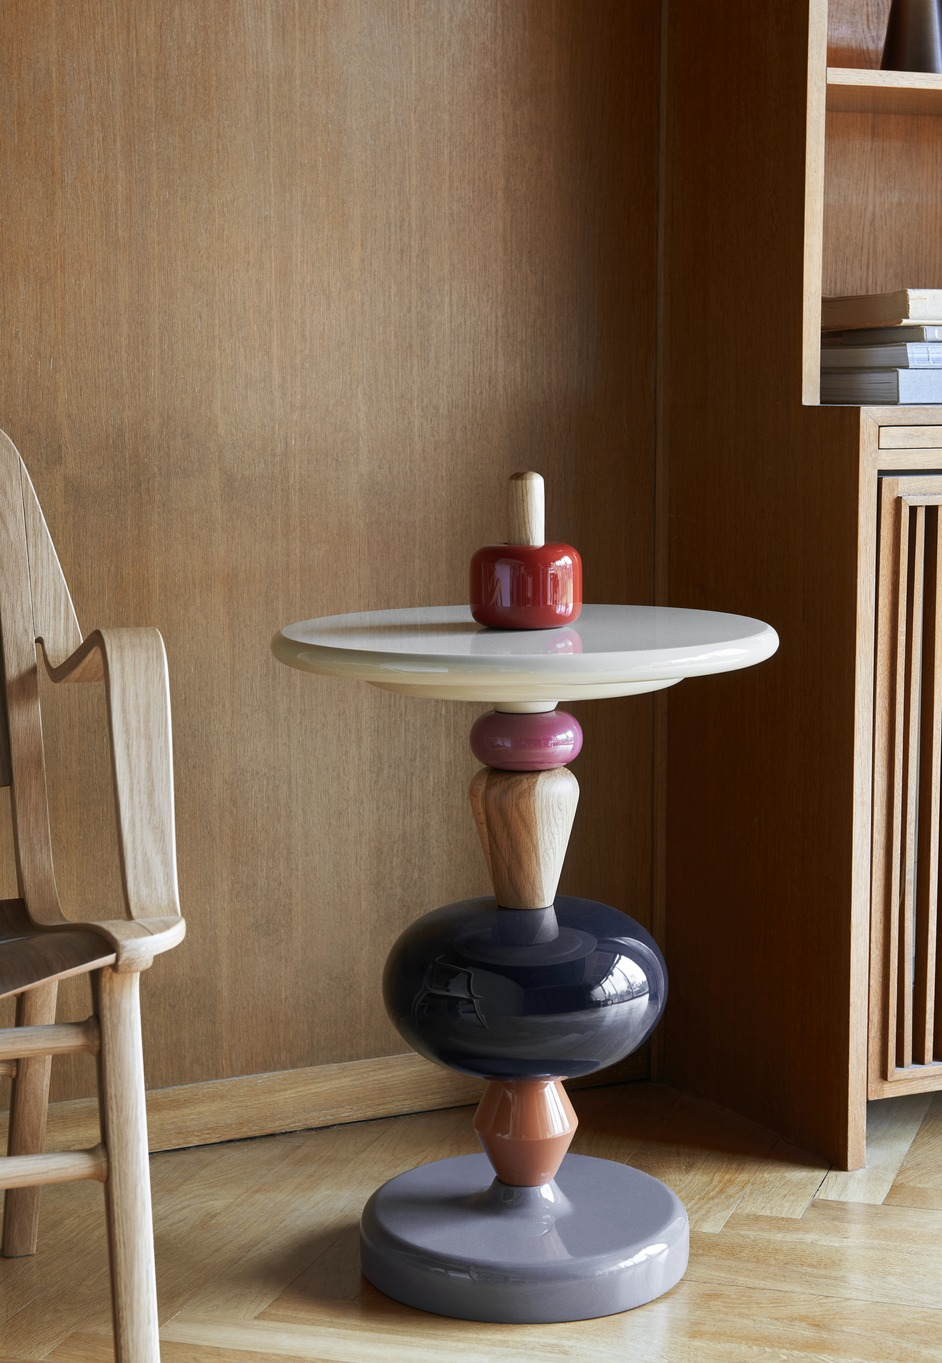 &Tradition Shuffle Table HM1 Spectrum